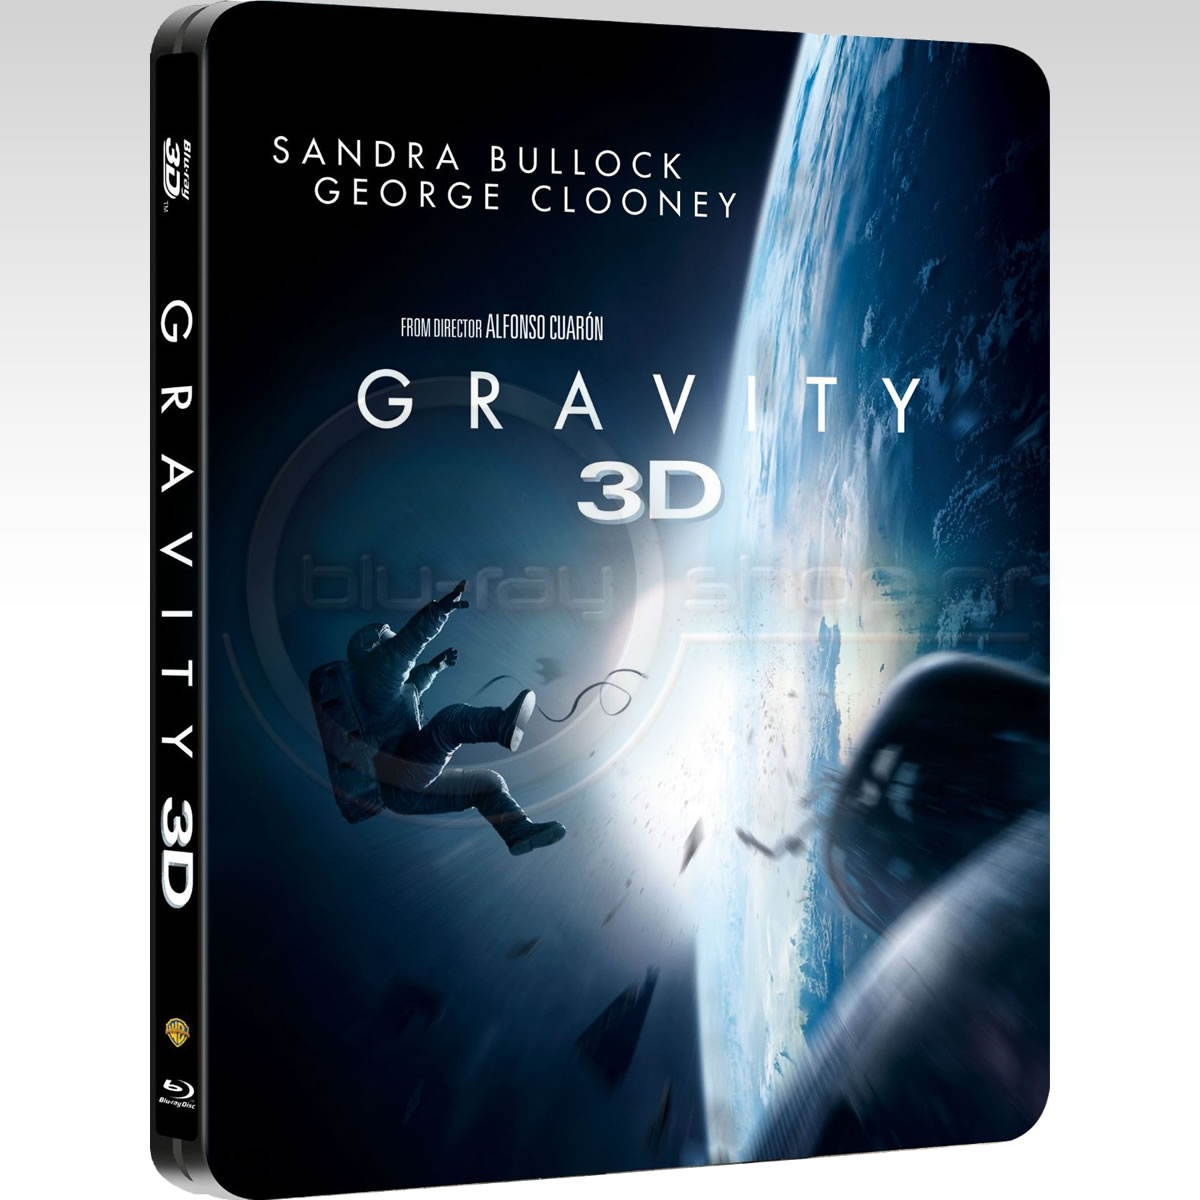 GRAVITY 3D - Limited Collector's Edition FuturePak (BLU-RAY 3D + BLU-RAY)